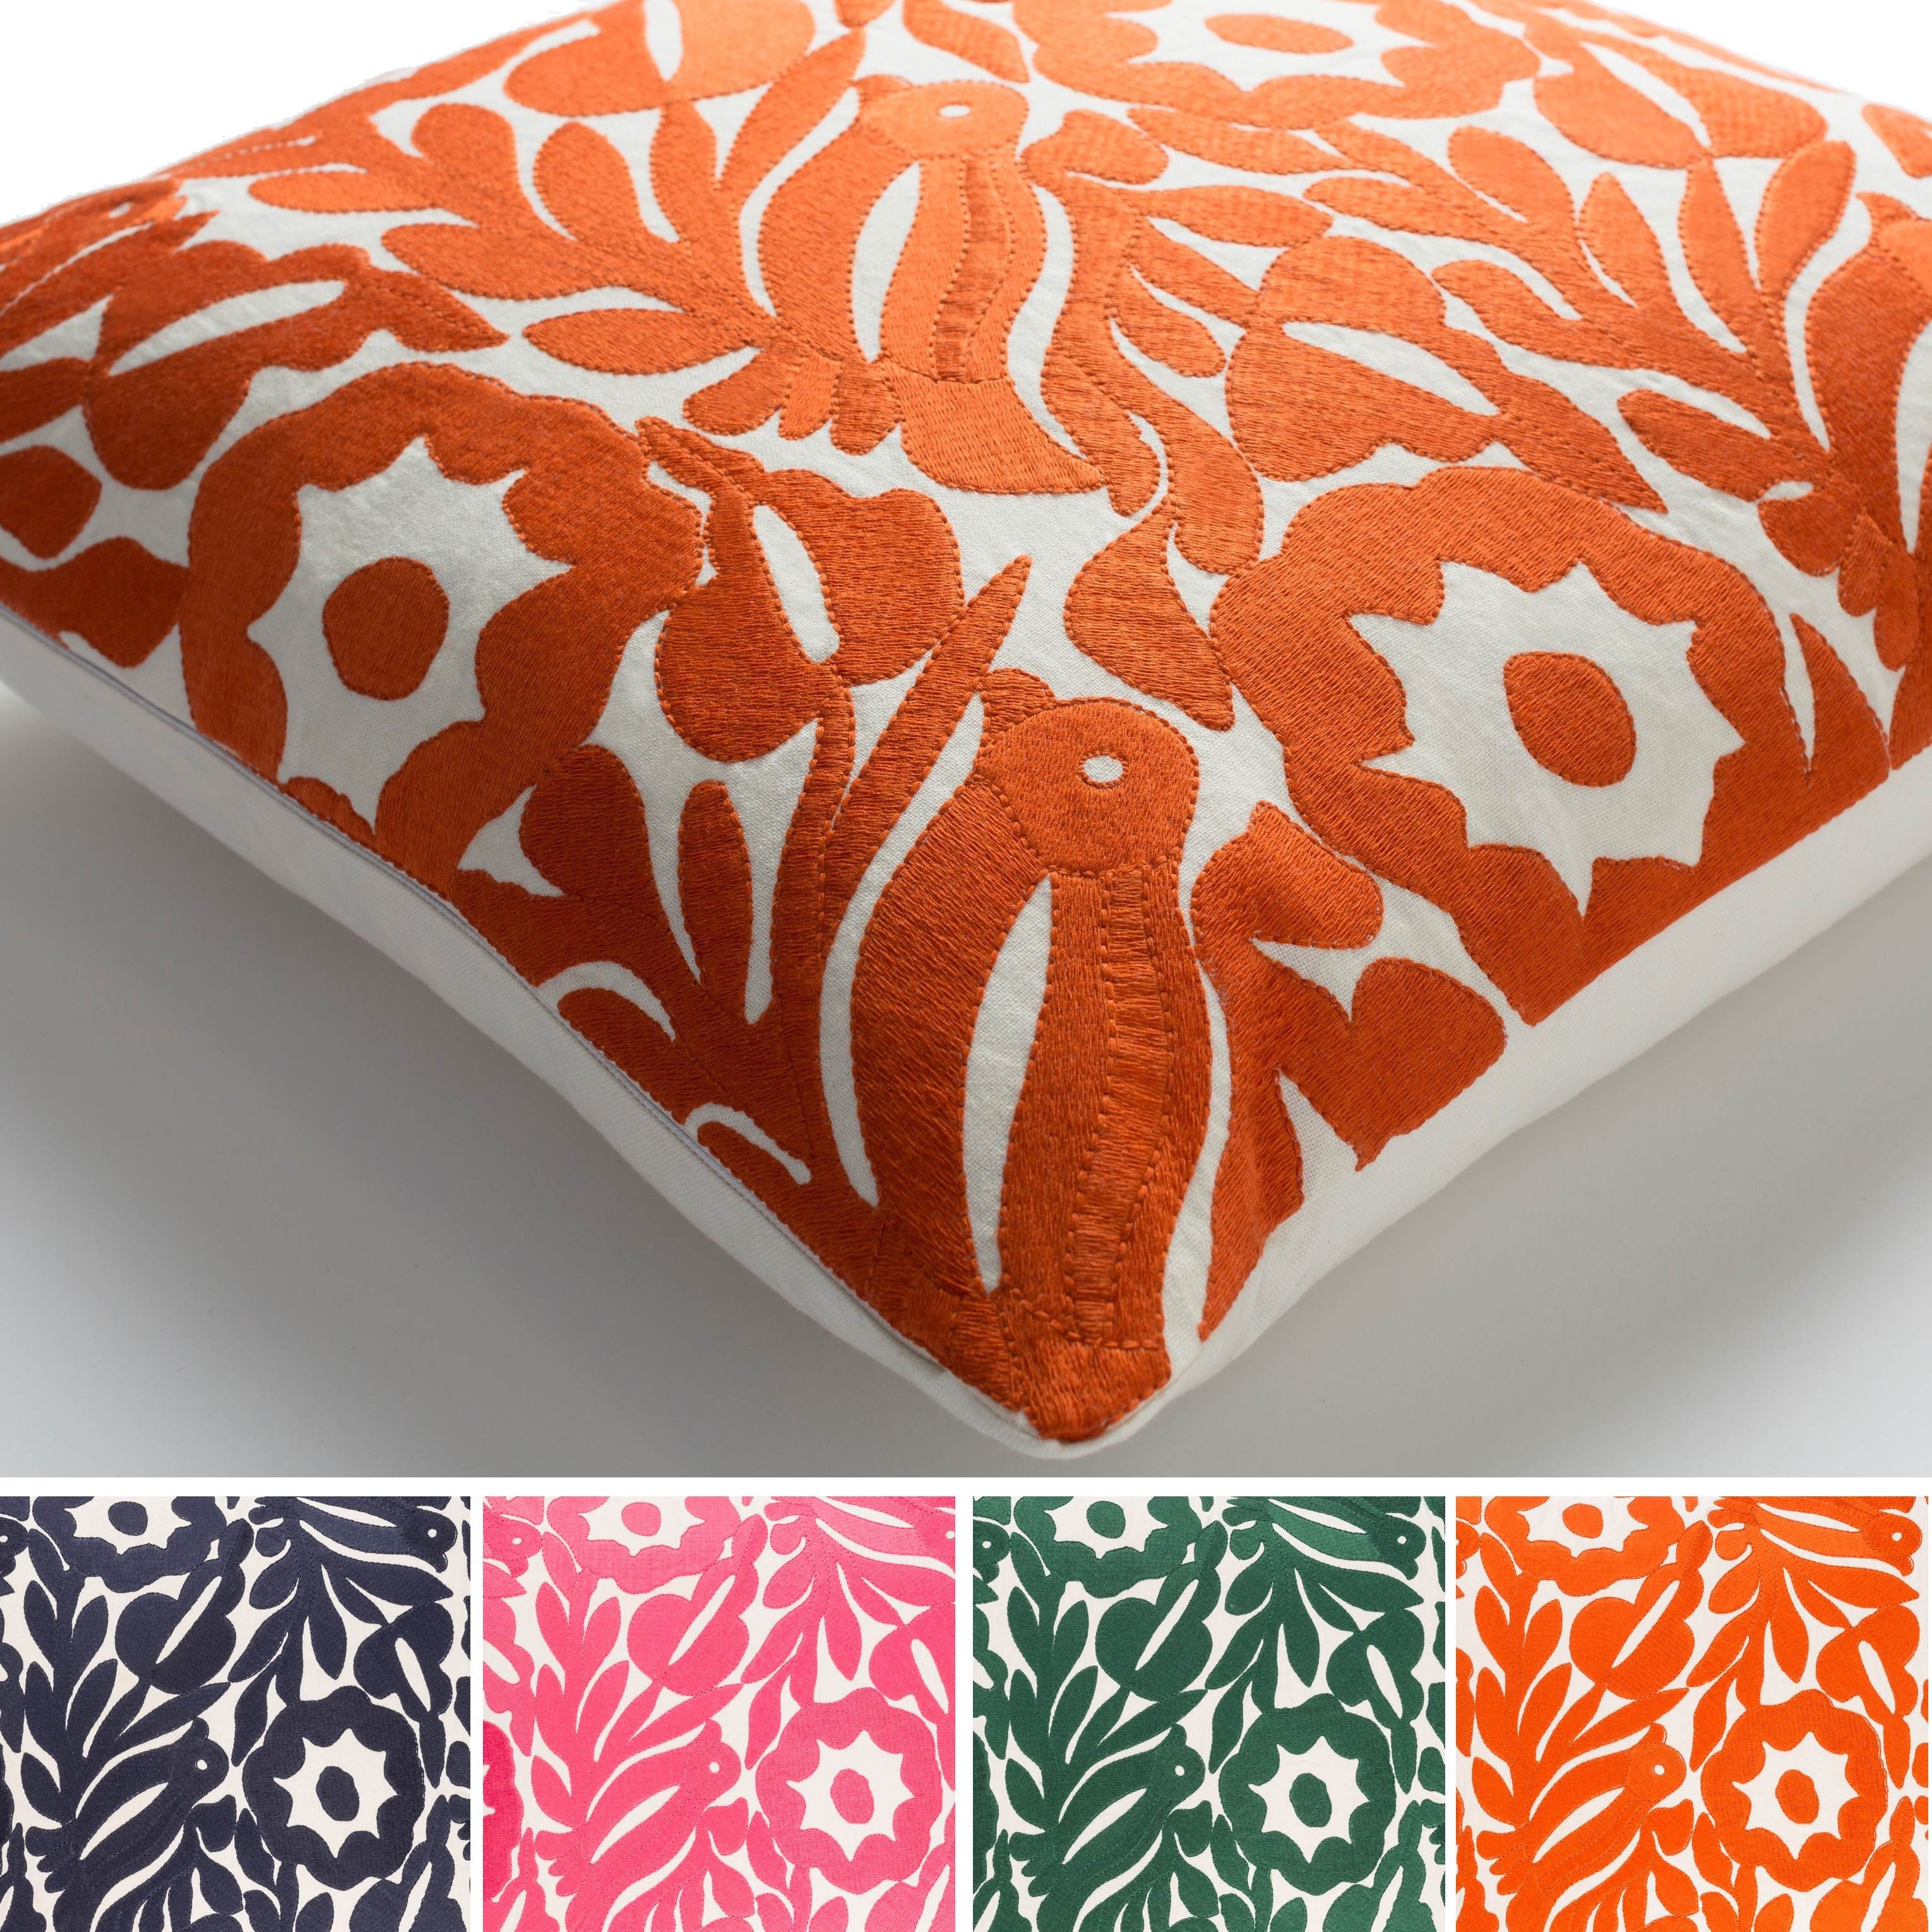 Boutique Orange Sarreguemines Buy Jacquard Throw Pillows Online At Overstock Our Best